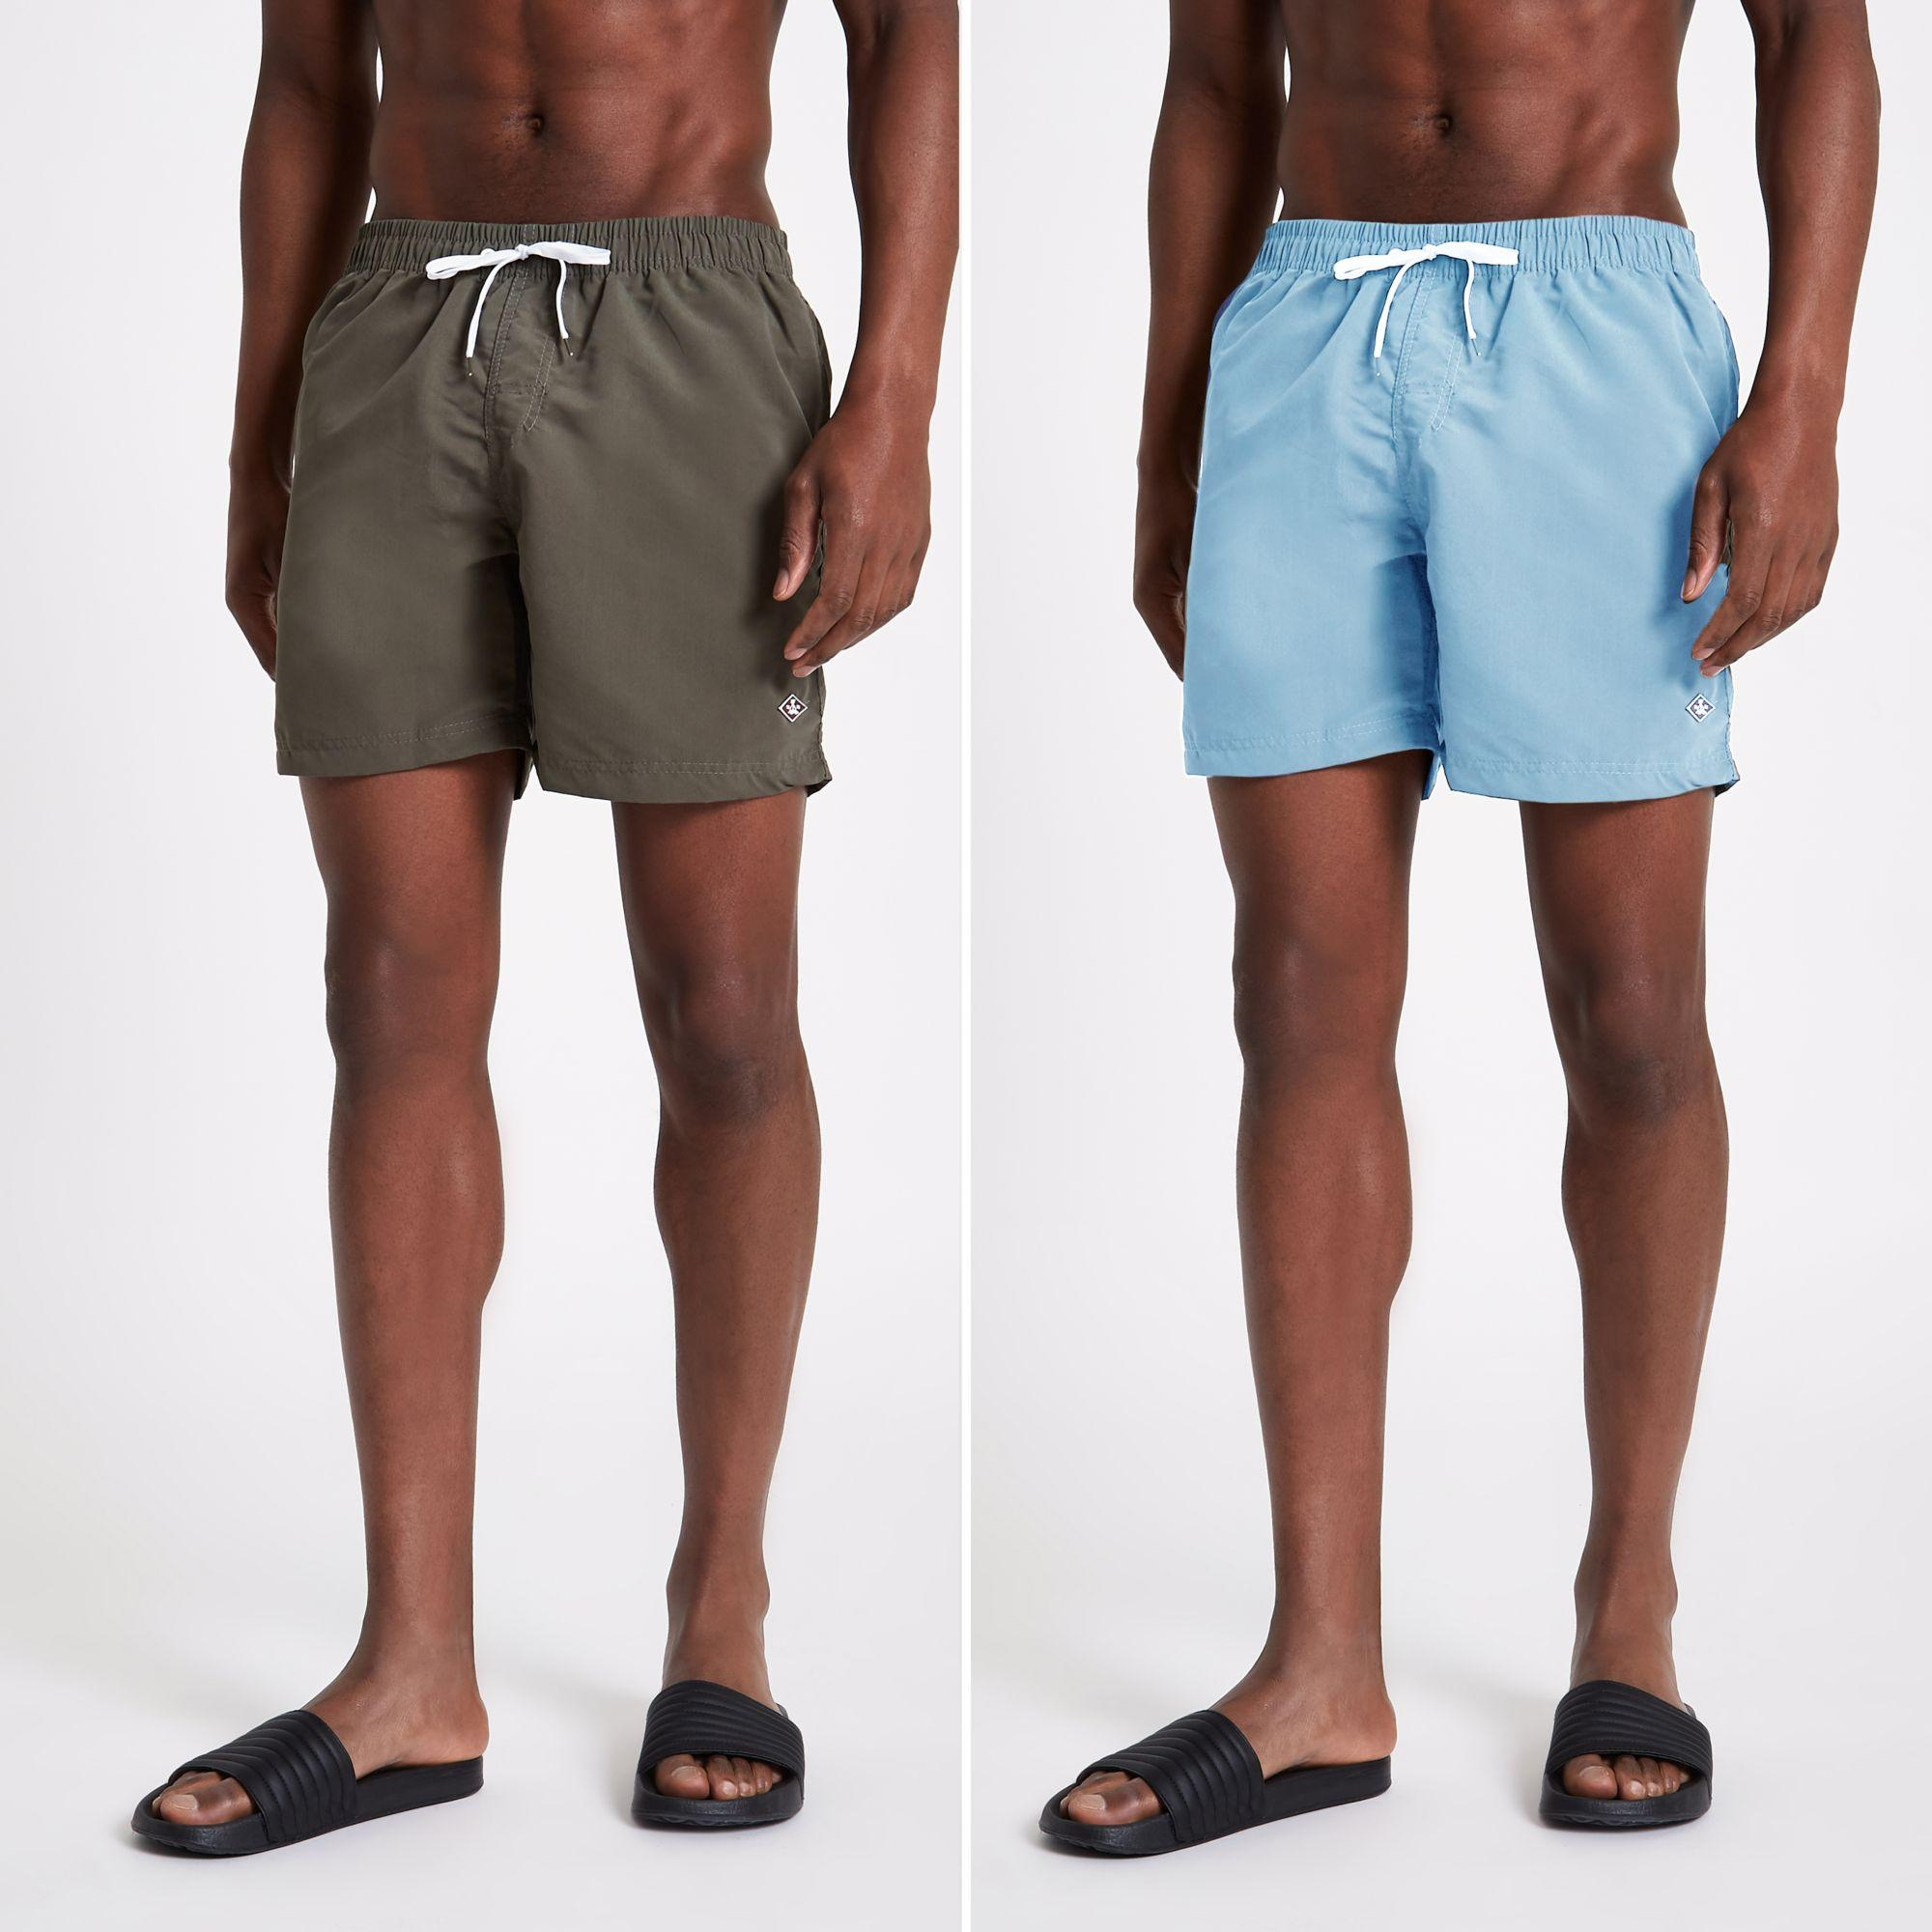 5a0752d641 Lyst - River Island Green And Light Blue Swim Trunks 2 Pack in Blue ...